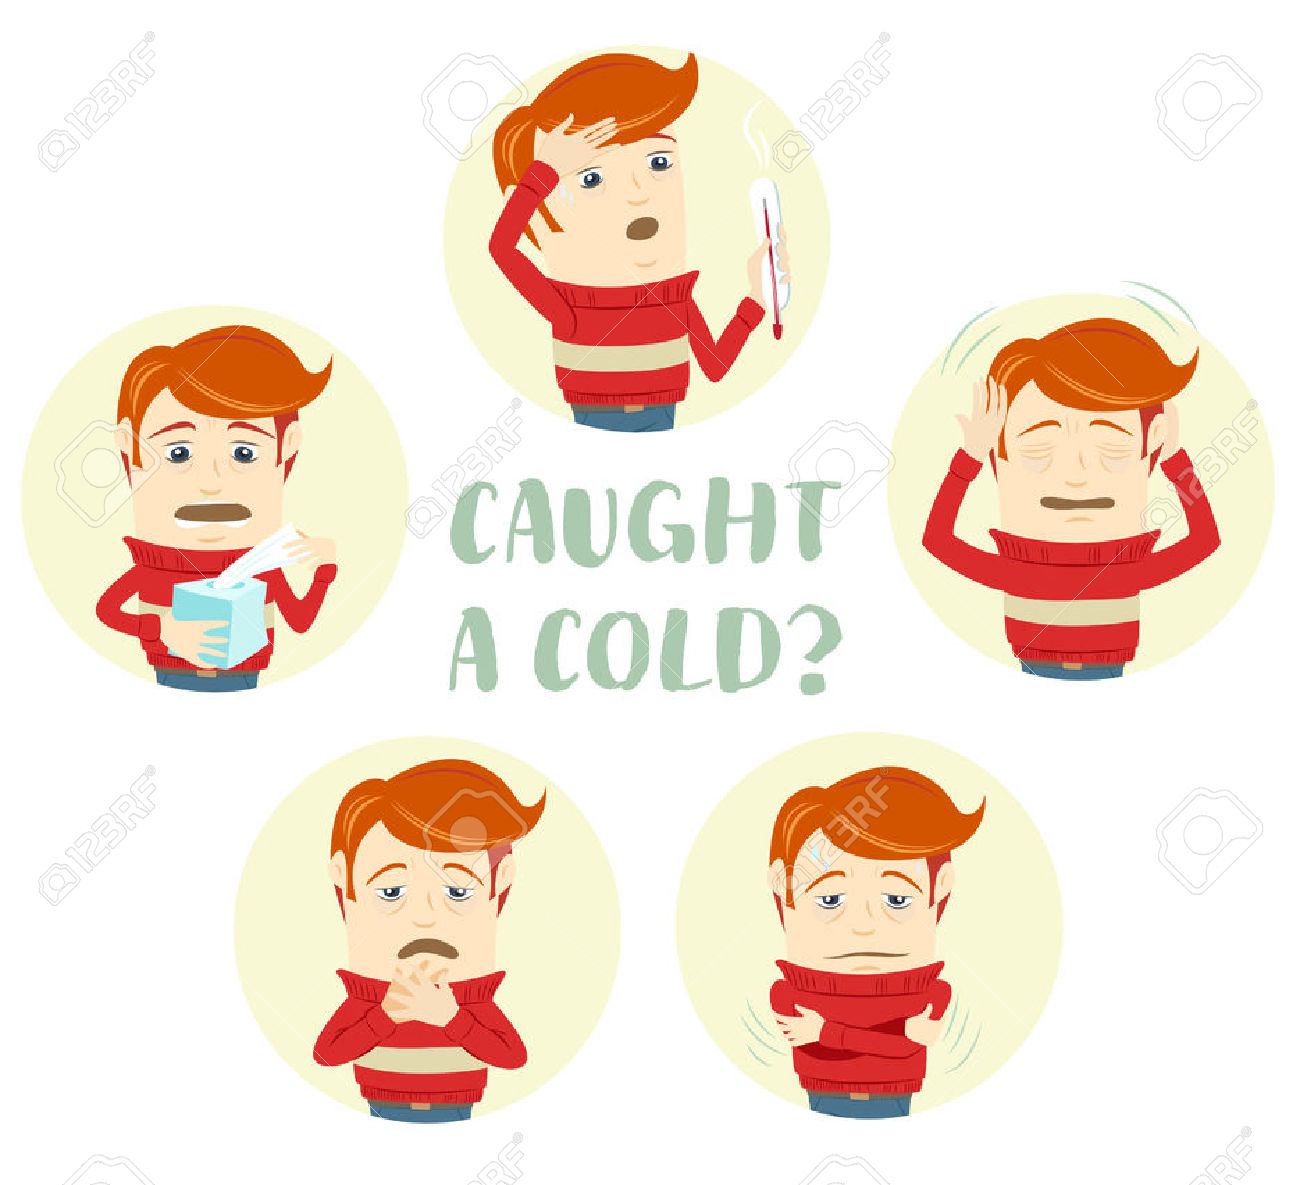 Covered clipart cough cold Collection and Images & Cough